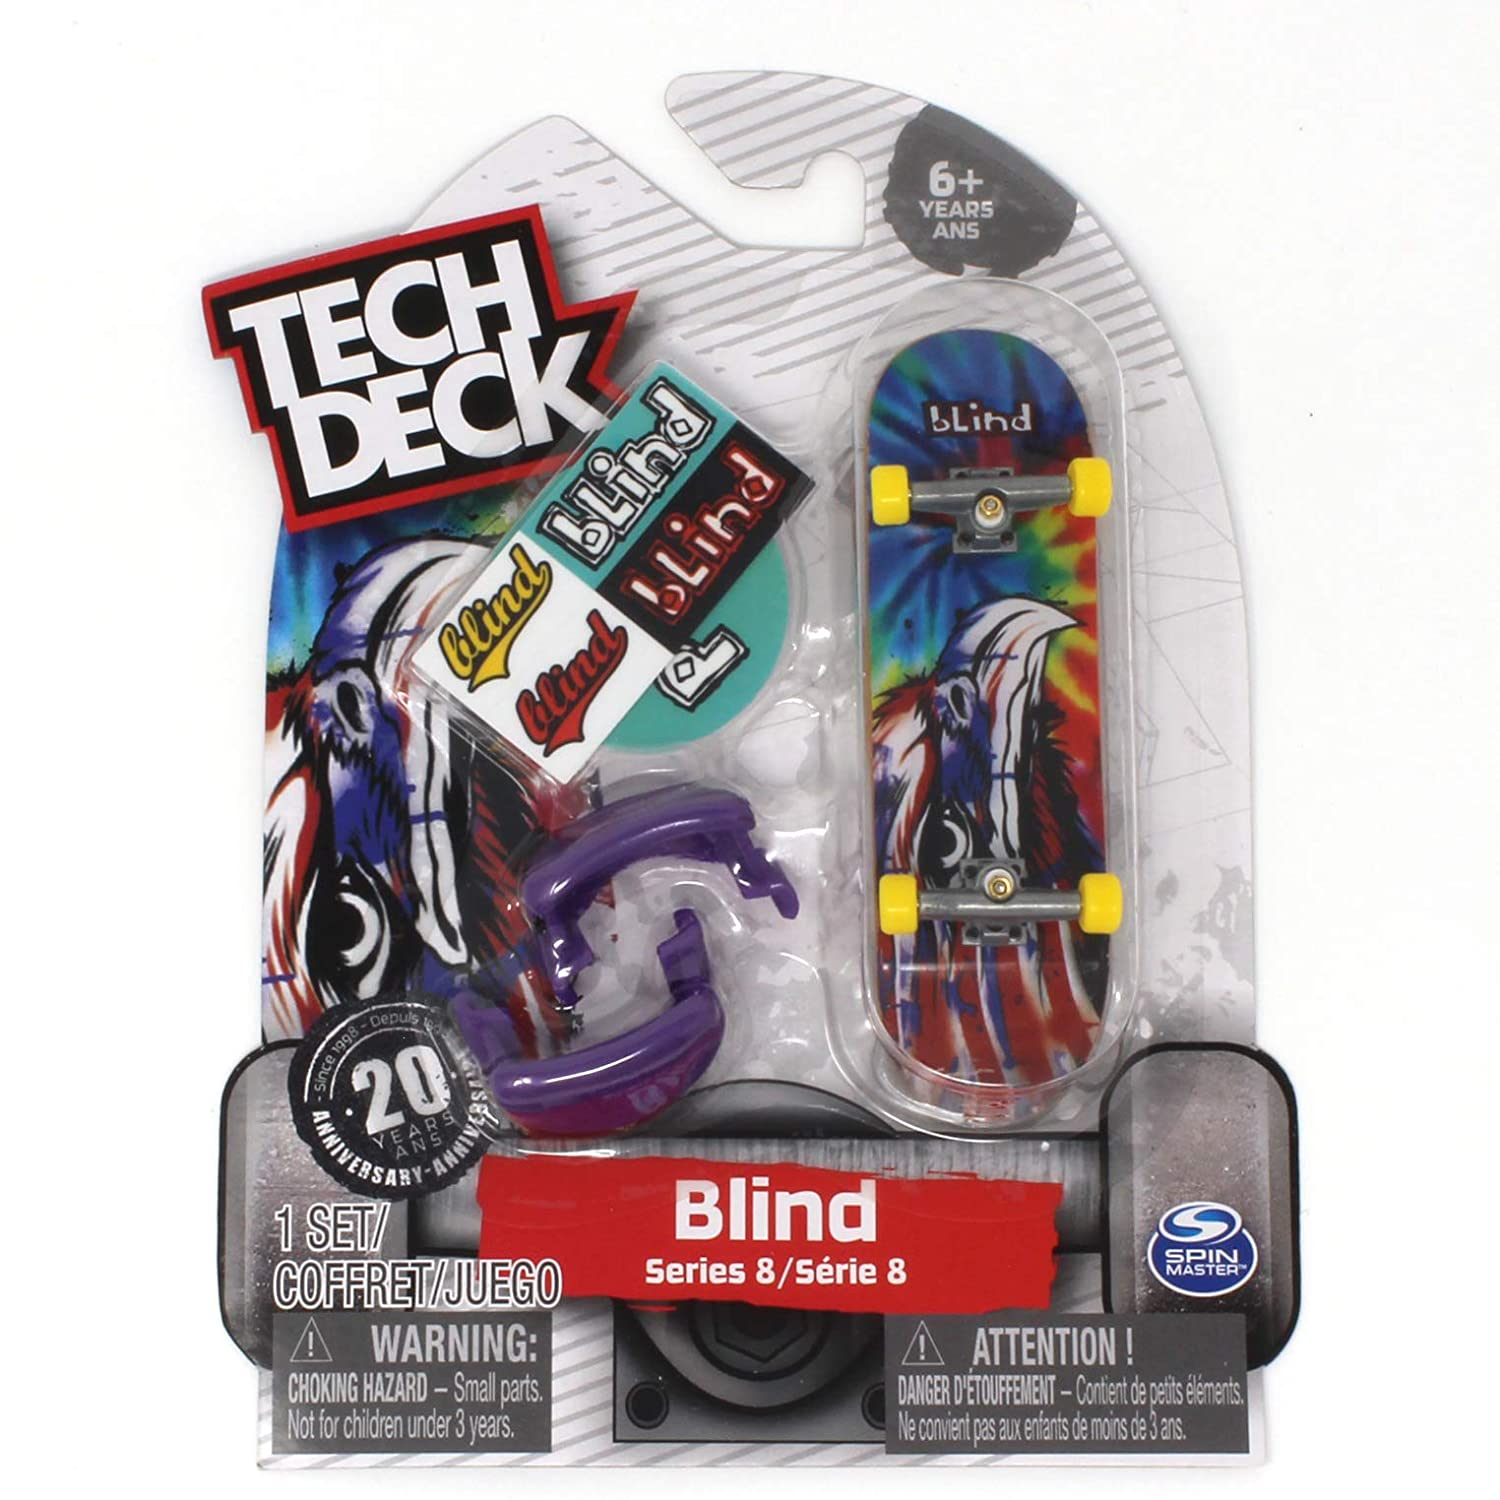 Tech Deck Blind Skateboards Rare Series 8 Eagle Tag Tie Dye Fingerboard 20094609